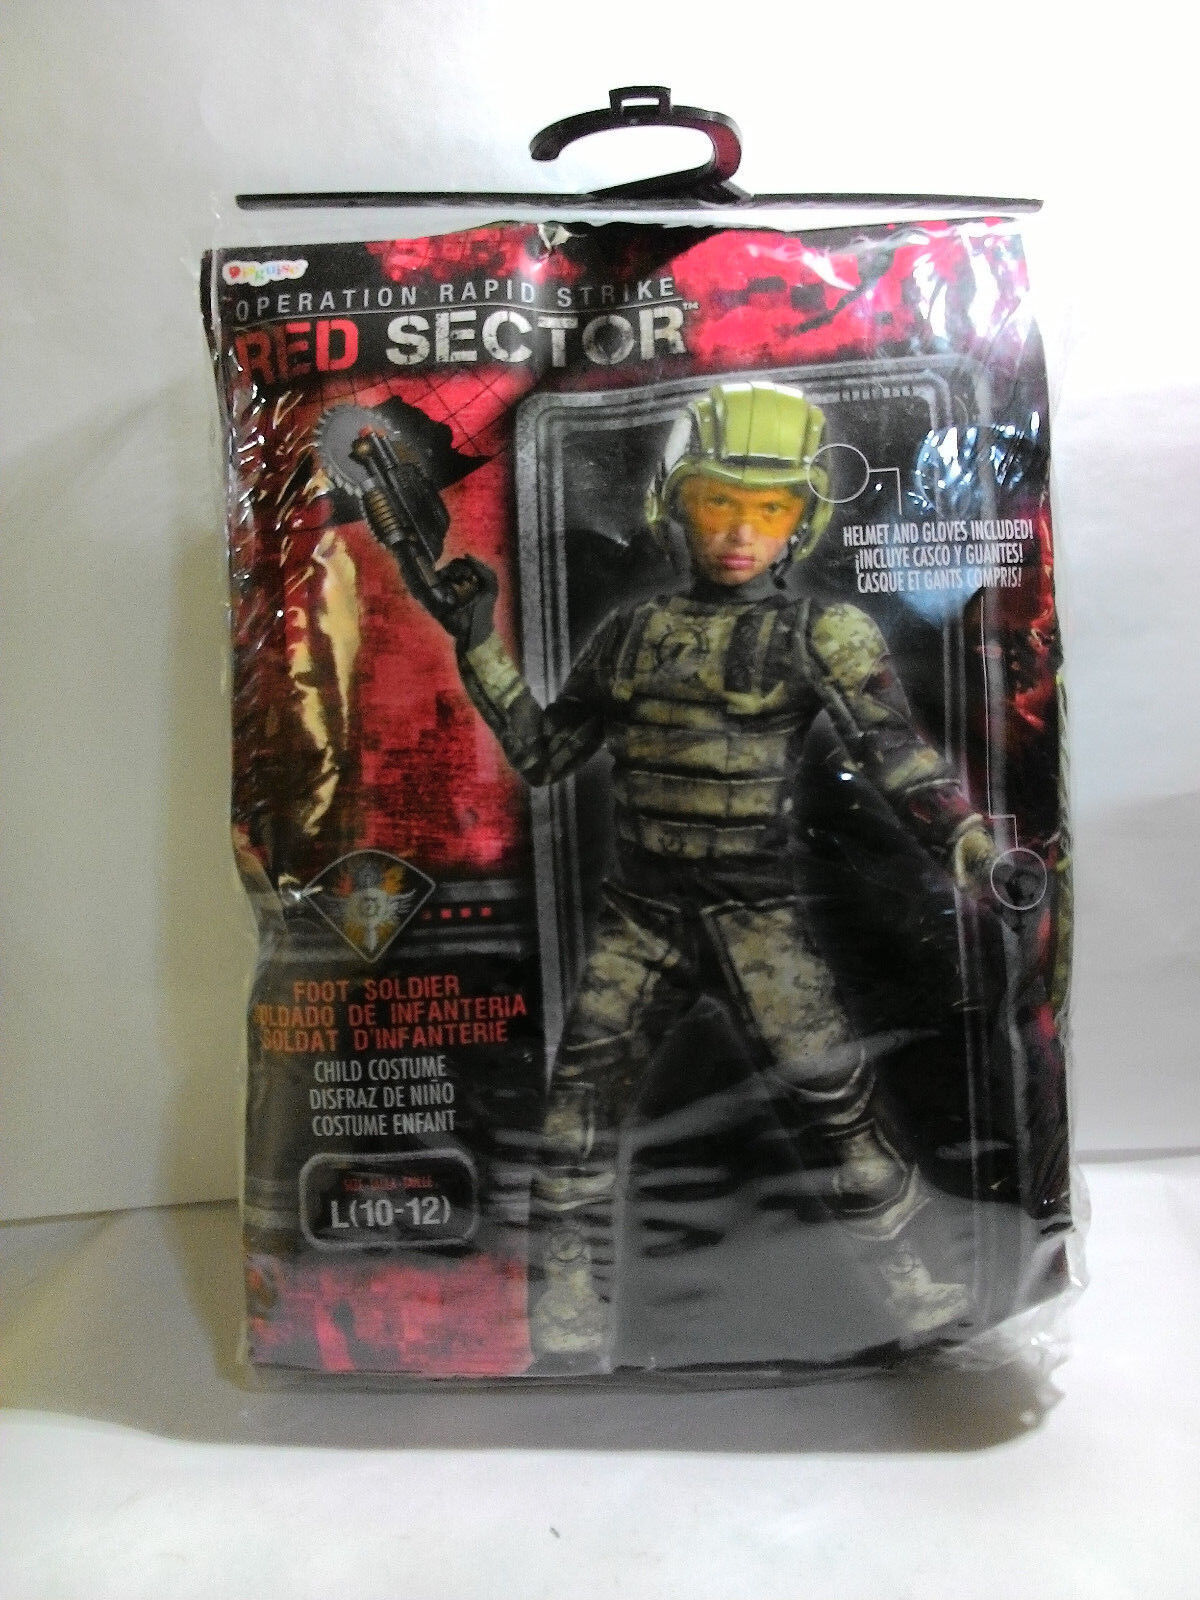 Operation Rapid Strike Red Sector Foot Soldier Classic Muscle Boys Costume S